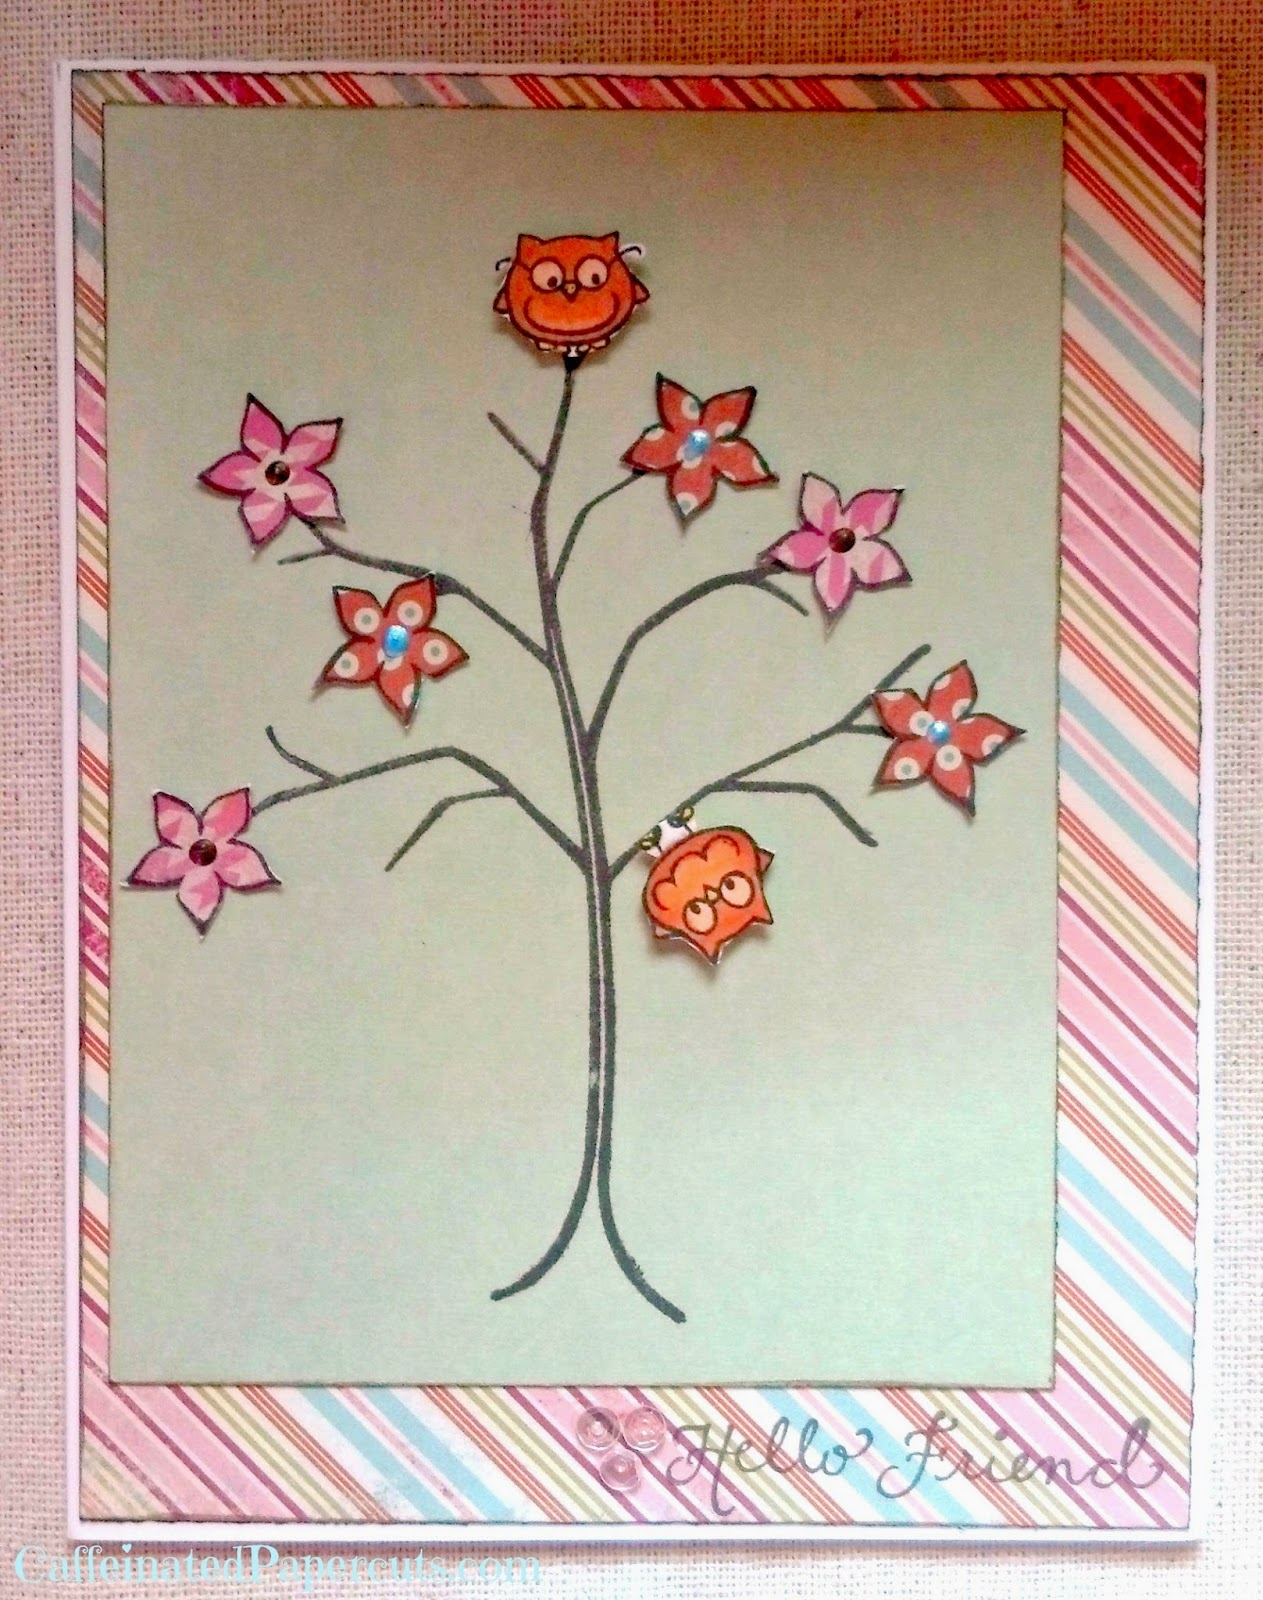 denami tree denami flowers denami owls pretty pink post summer card